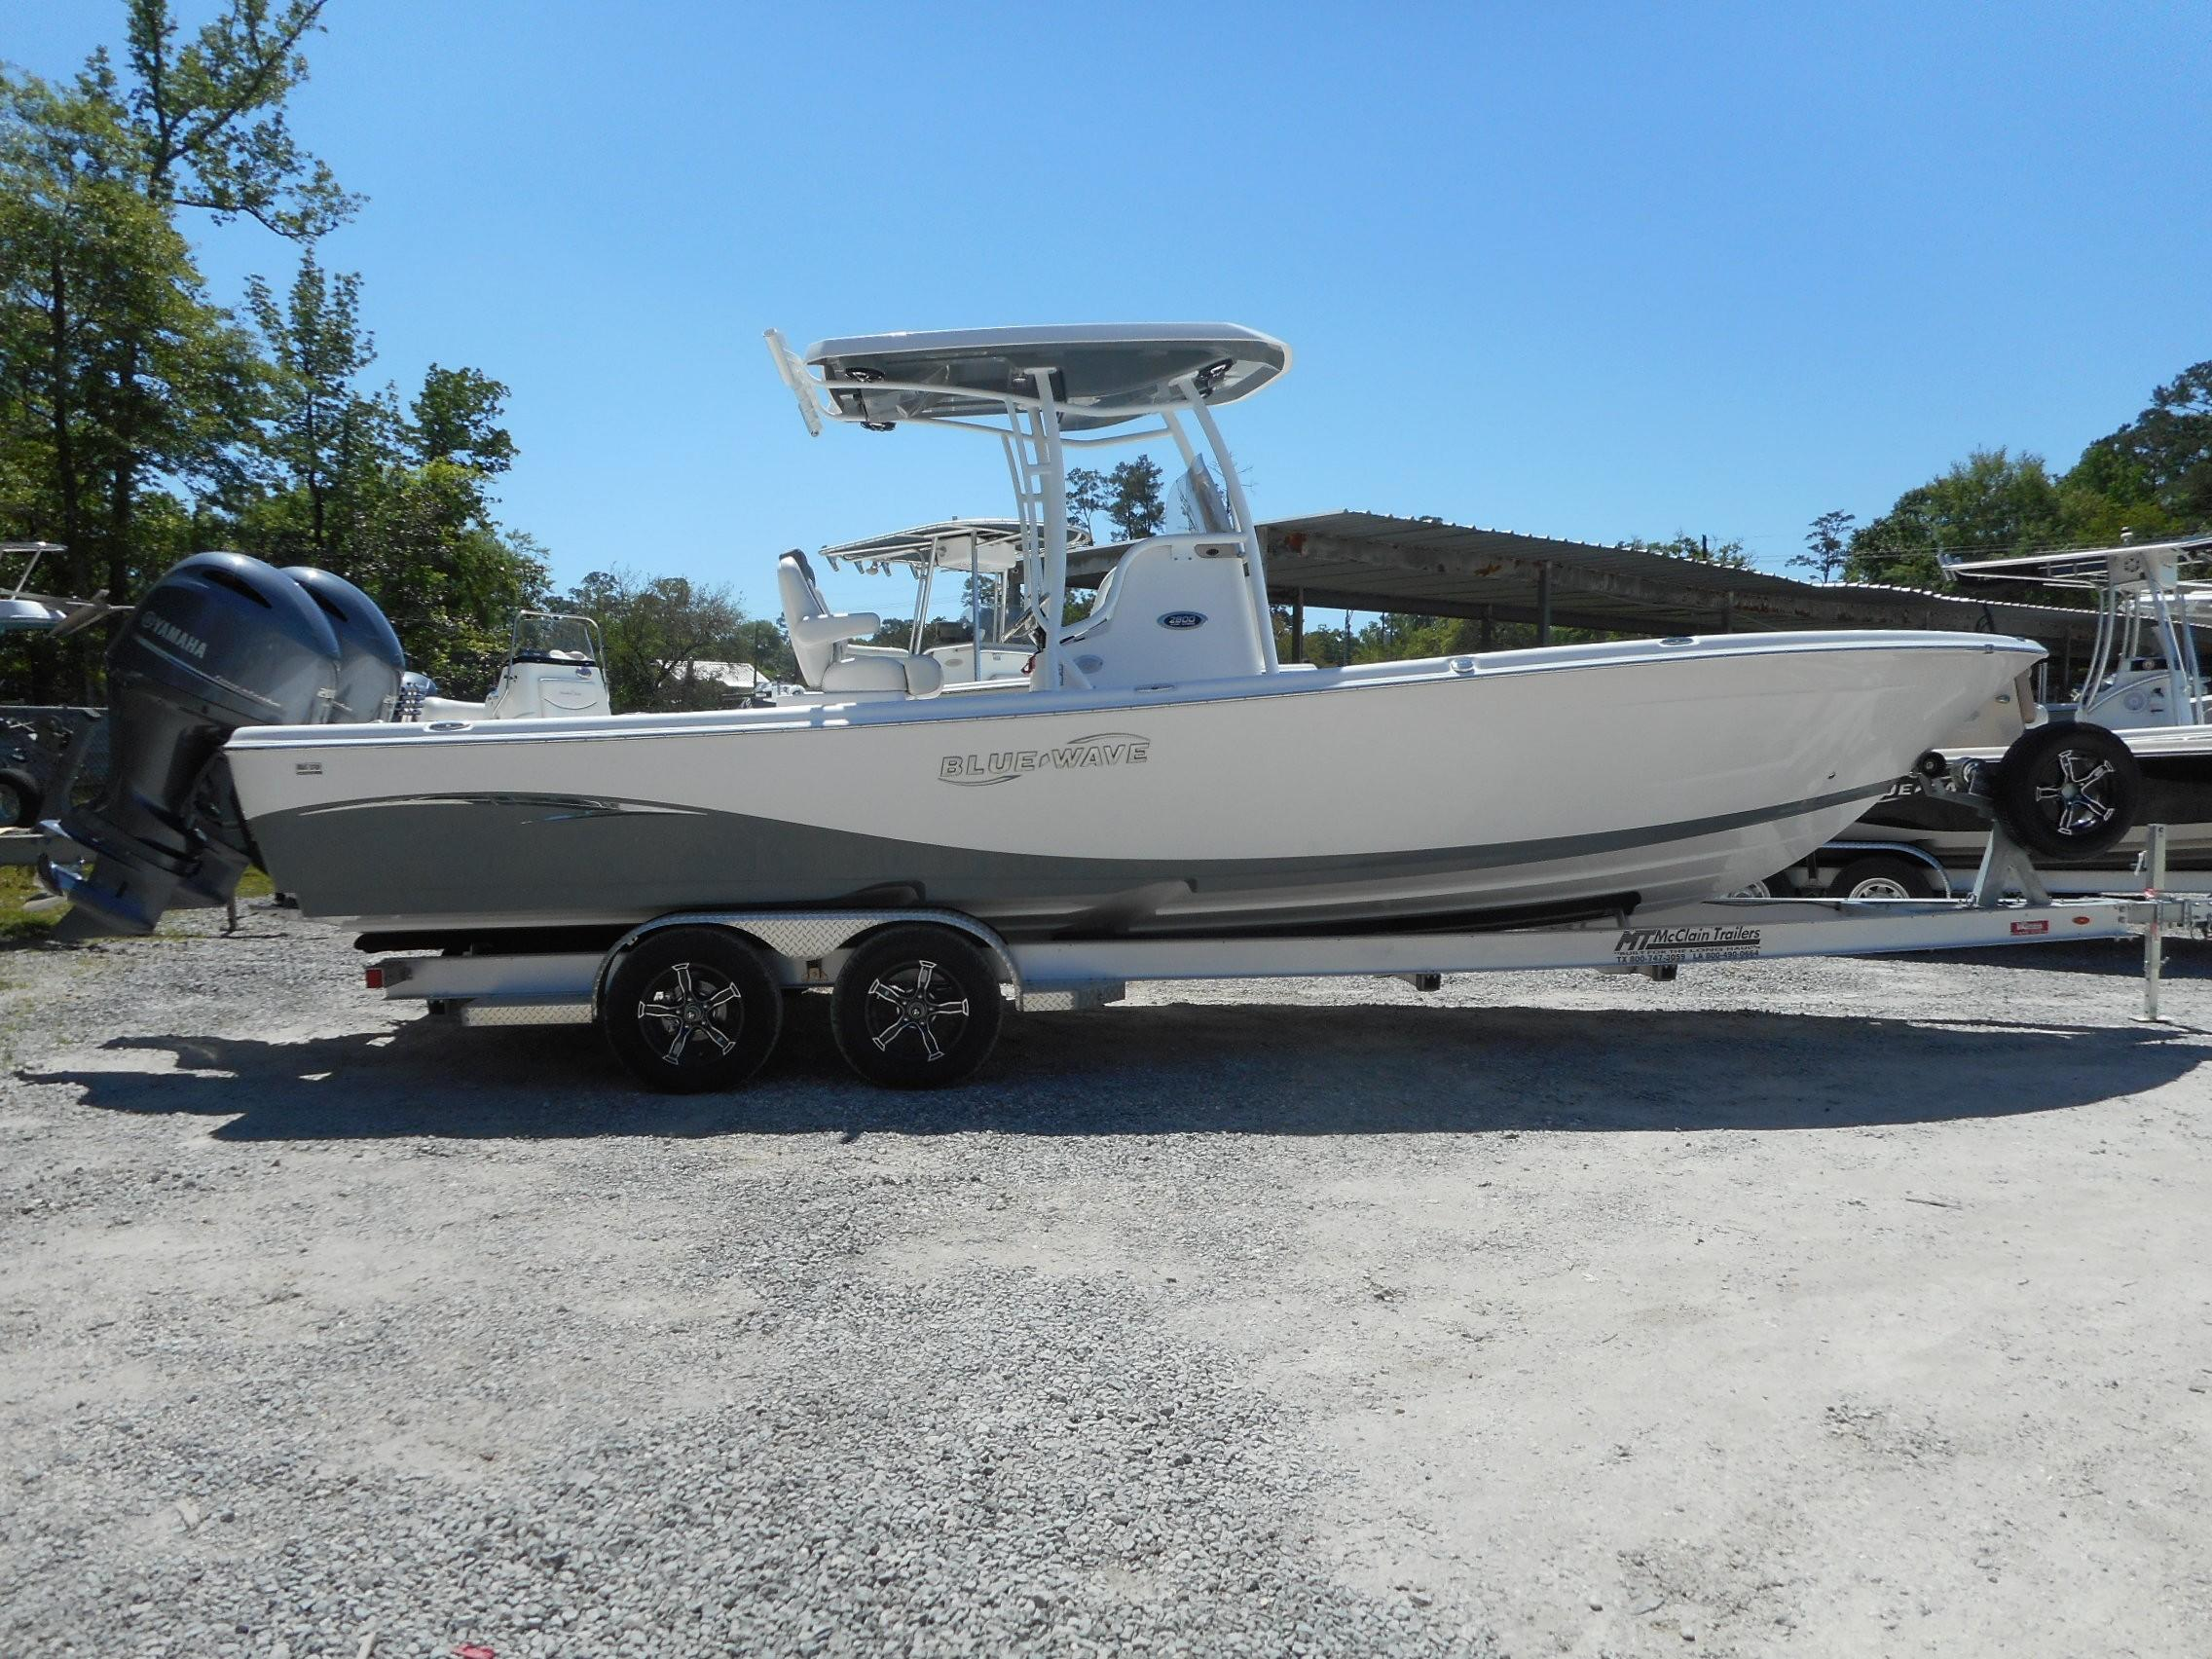 New  2019 27.17' Blue Wave 2800 Pure Hybrid Center Console in Slidell, Louisiana